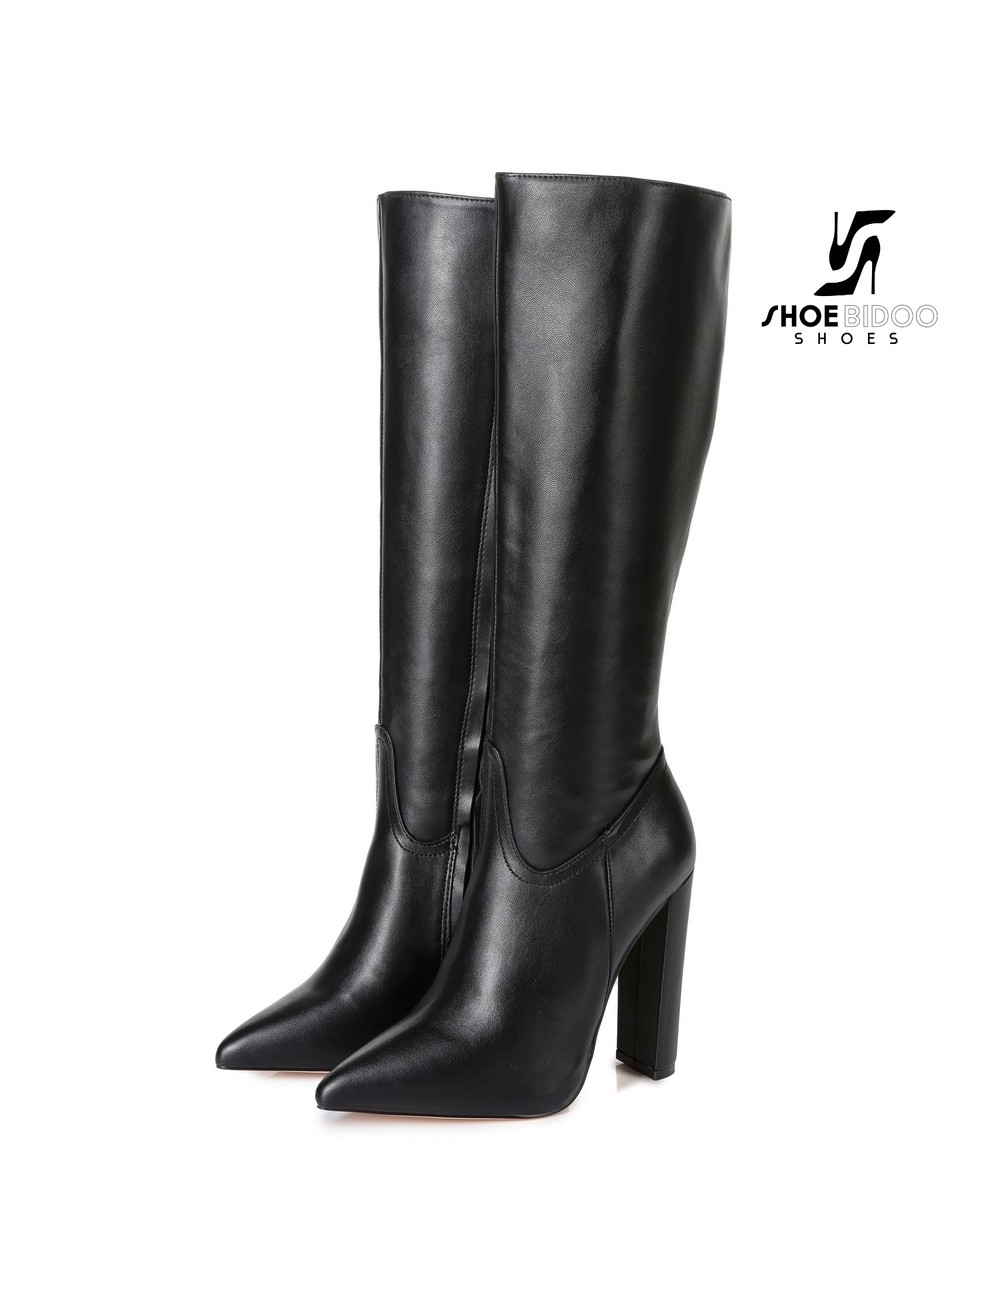 Giaro Giaro fashion knee boots TAKEN in black matte